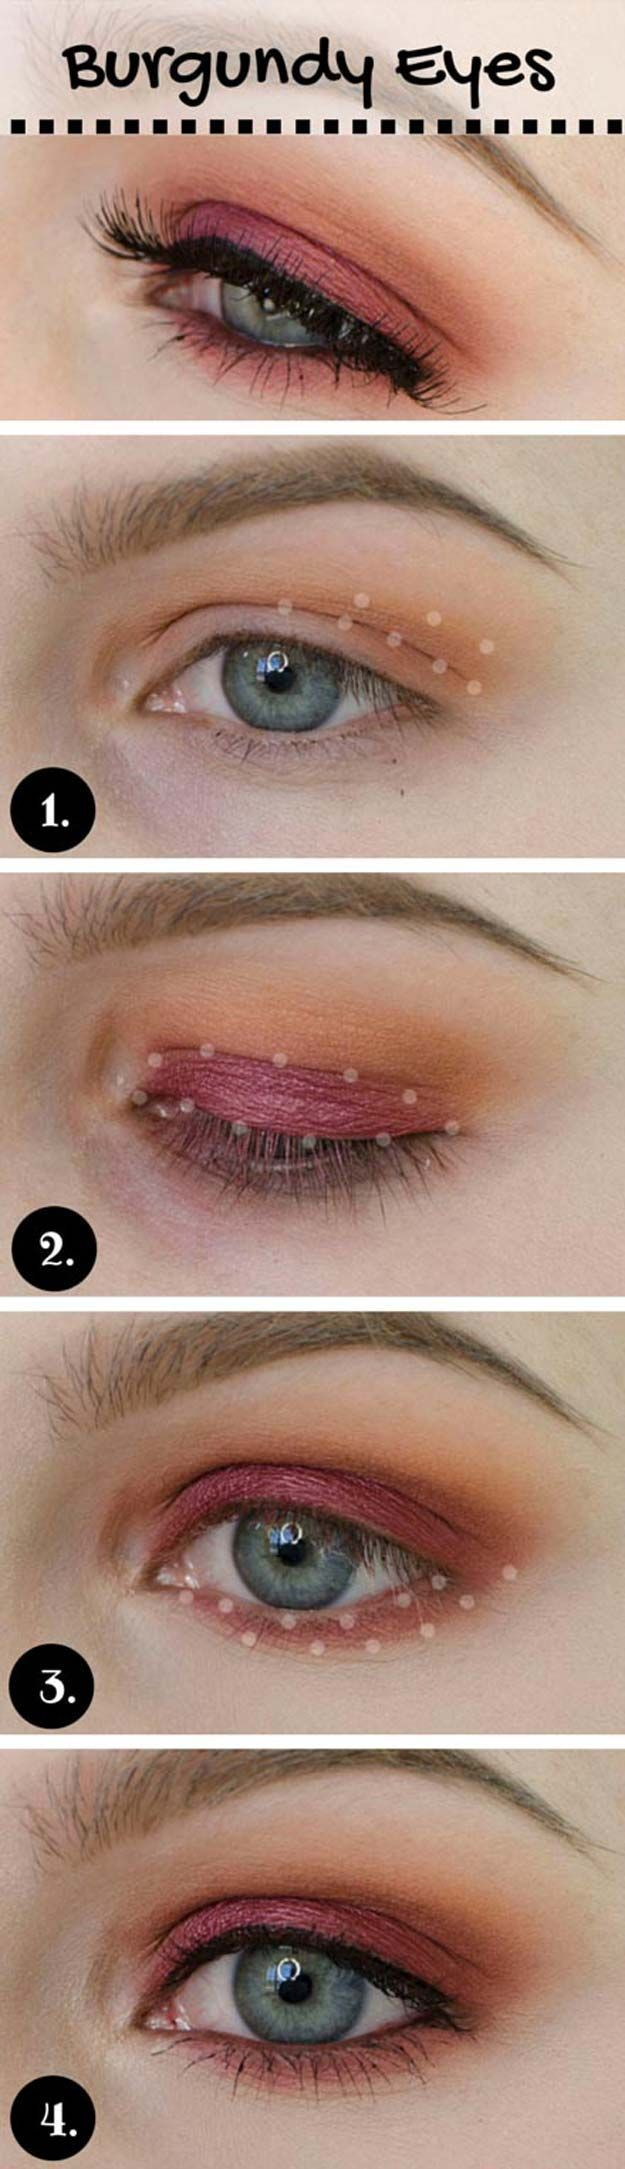 Best Eyeshadow Tutorials - Burgundy Make-up Look - Easy Step by Step How To For ...